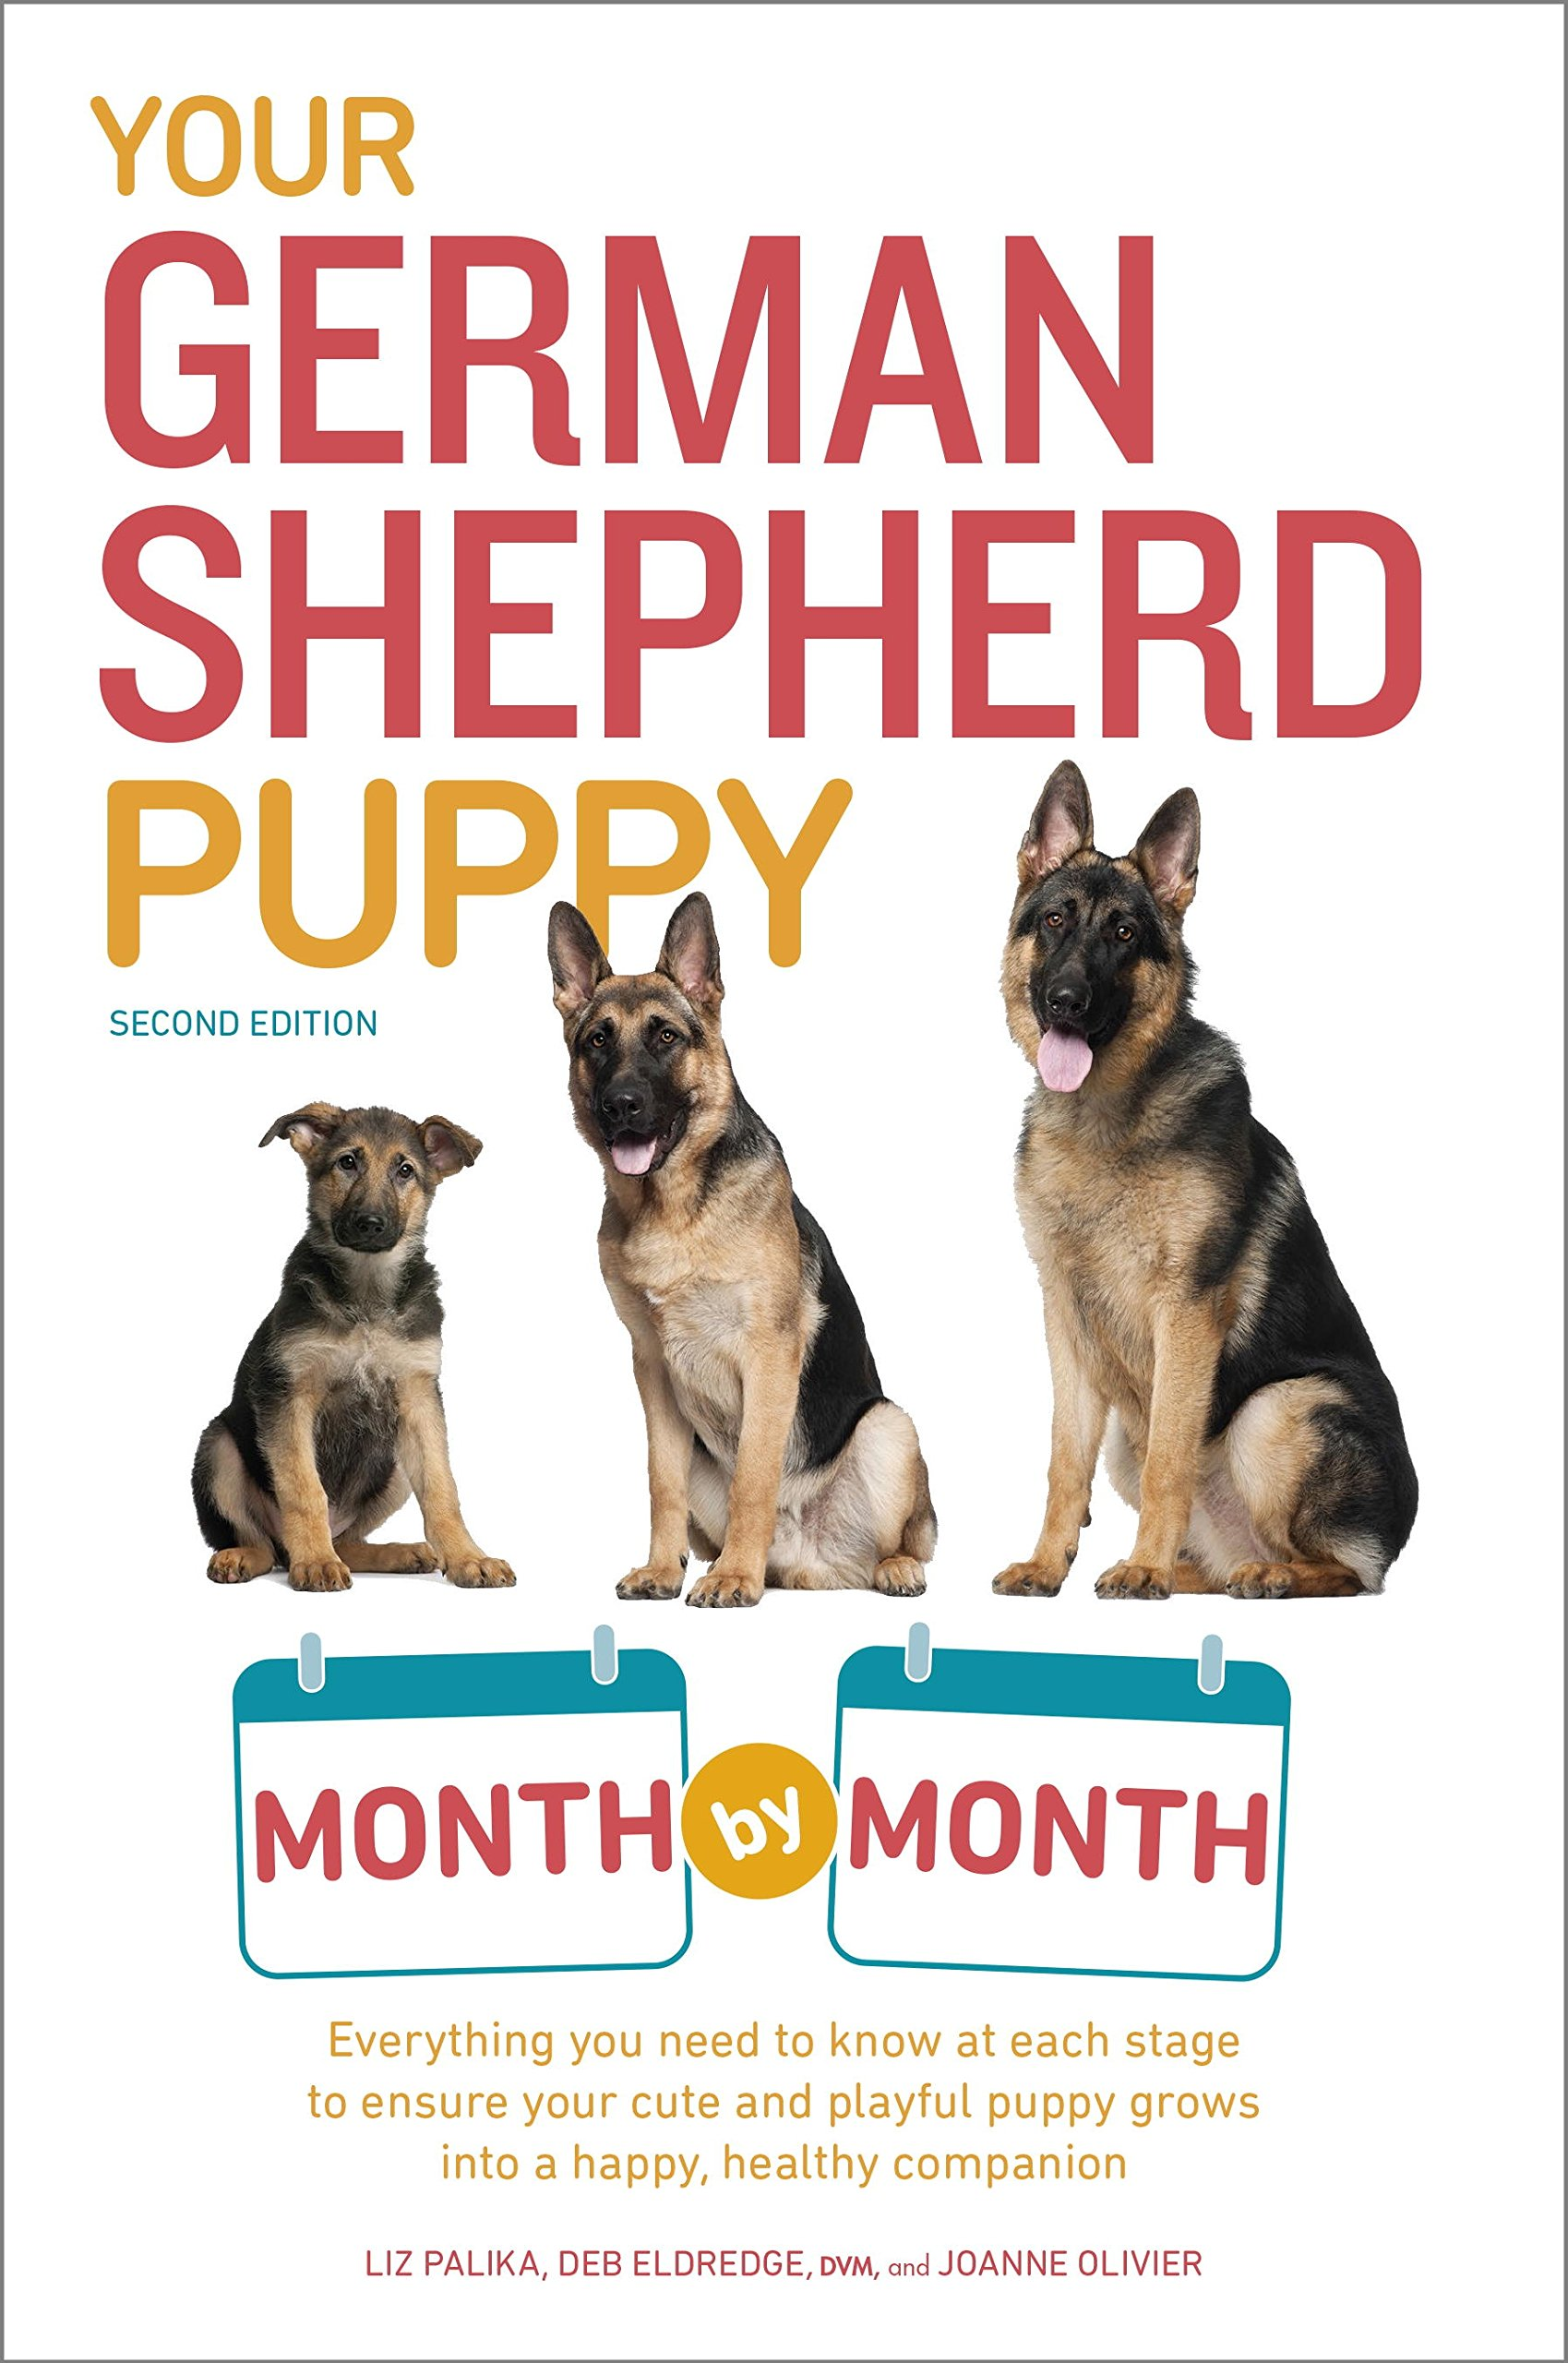 Your German Shepherd Puppy Month by Month, 2nd Edition: Everything You Need to Know at Each State to Ensure Your Cute and Playful Puppy (Your Puppy Month by Month) 2